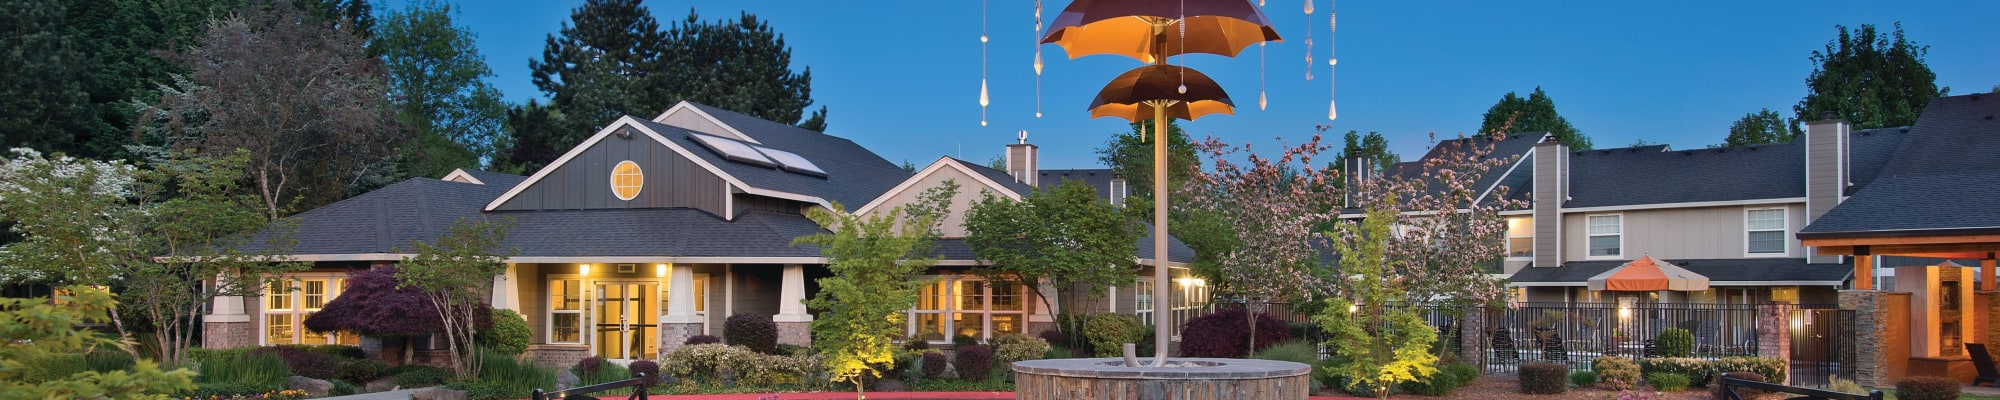 Resident perks at Slate Ridge at Fisher's Landing Apartment Homes in Vancouver, Washington